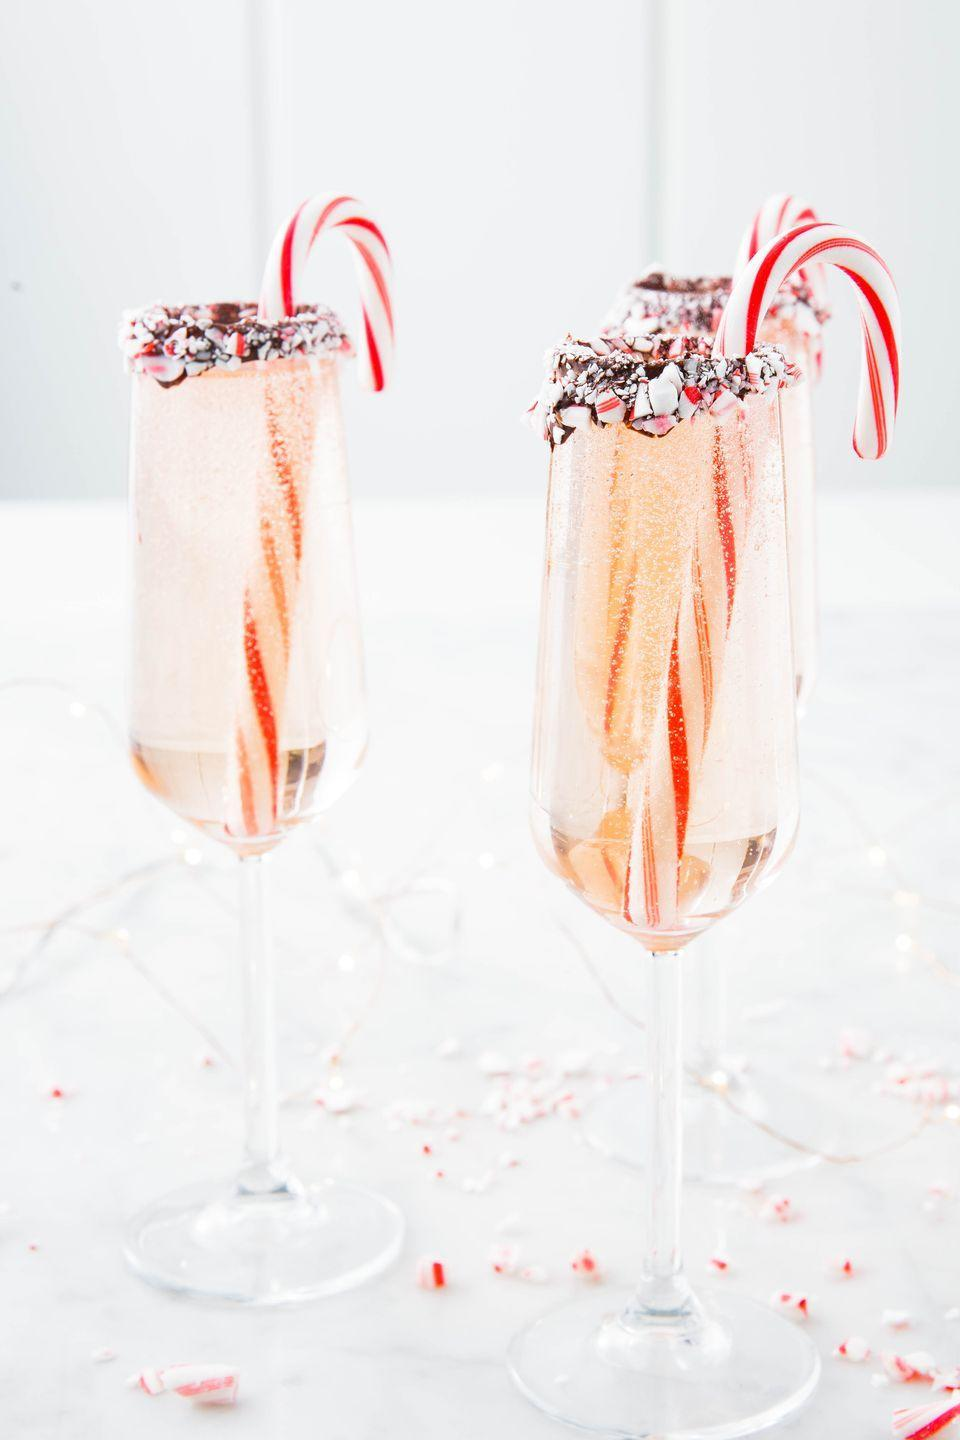 "<p>These mimosas are just the thing to get you in the holiday spirit! </p><p><br>Get the recipe from <a href=""https://www.delish.com/cooking/recipe-ideas/a25128817/peppermint-bark-mimosas-recipe/"" rel=""nofollow noopener"" target=""_blank"" data-ylk=""slk:Delish"" class=""link rapid-noclick-resp"">Delish</a>.</p>"